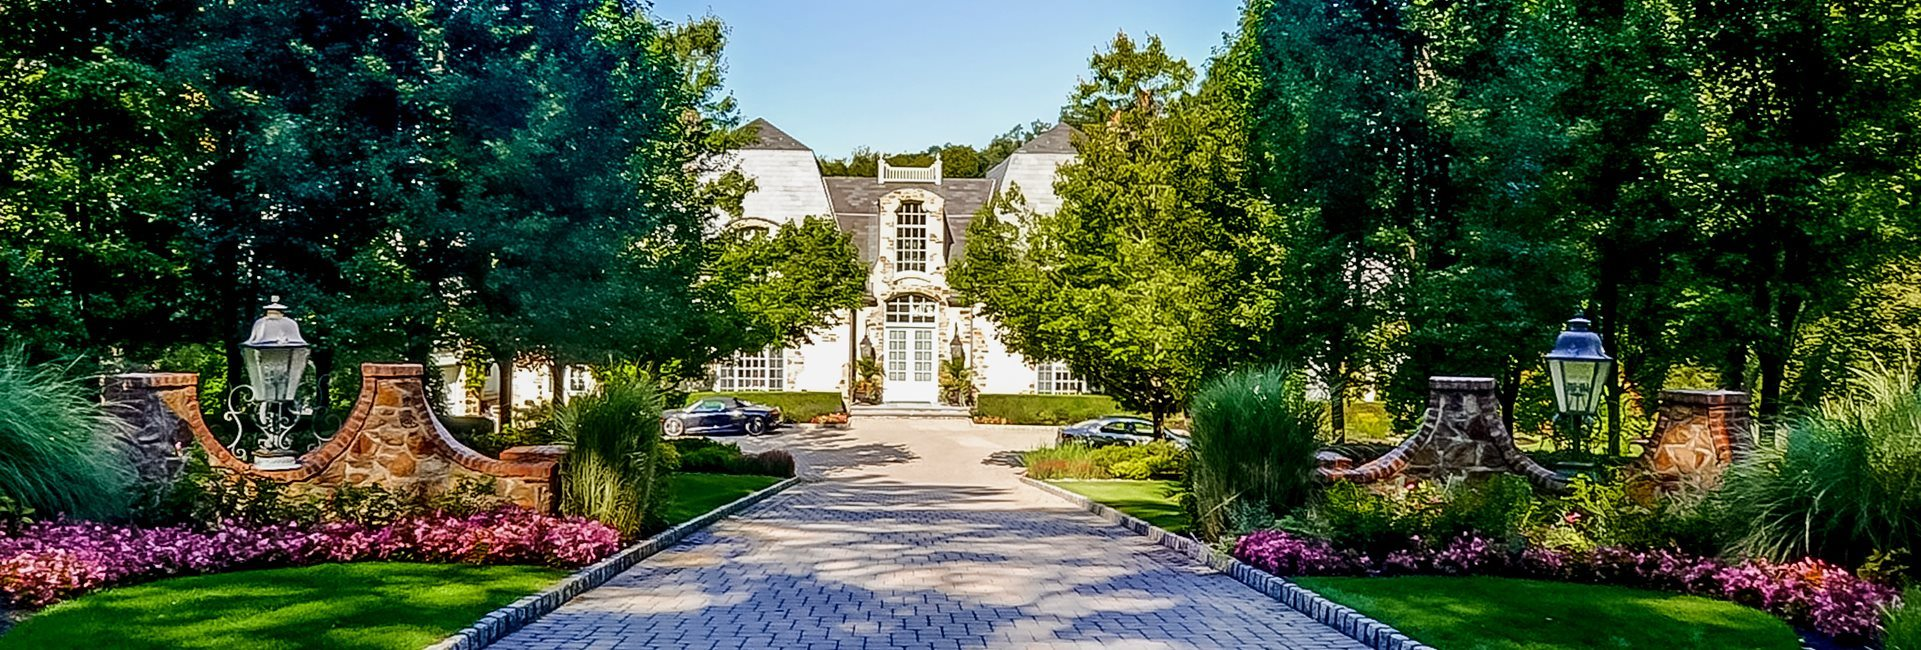 Luxury Custom Built Home in NJ